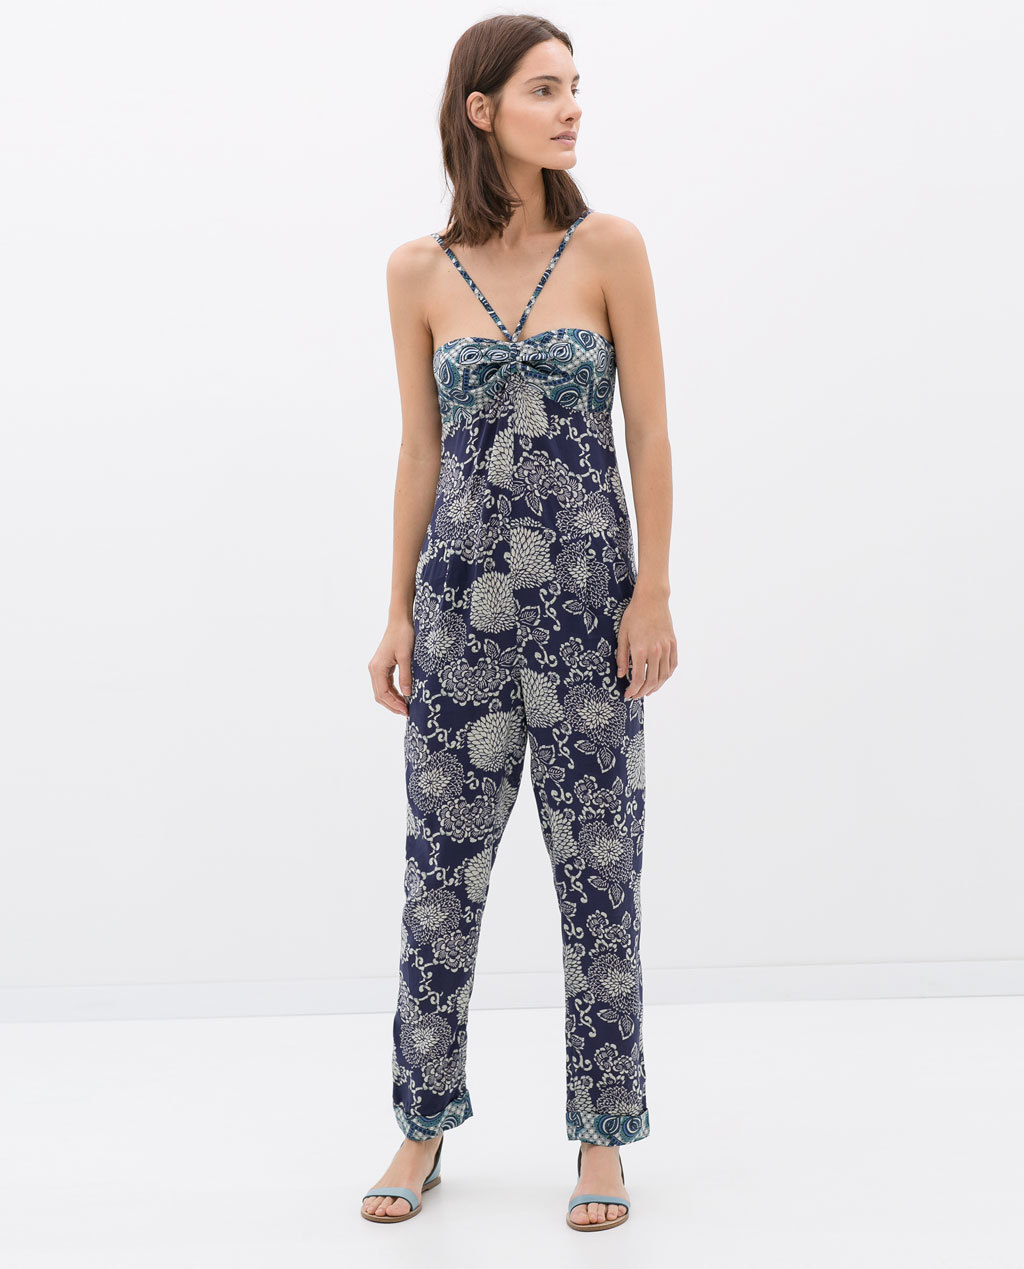 Flower Print Jumpsuit - sleeve style: sleeveless; neckline: low halter neck; predominant colour: navy; occasions: casual, holiday; length: ankle length; fit: body skimming; fibres: viscose/rayon - 100%; sleeve length: sleeveless; style: jumpsuit; pattern type: fabric; pattern size: big & busy; pattern: florals; texture group: other - light to midweight; season: s/s 2014